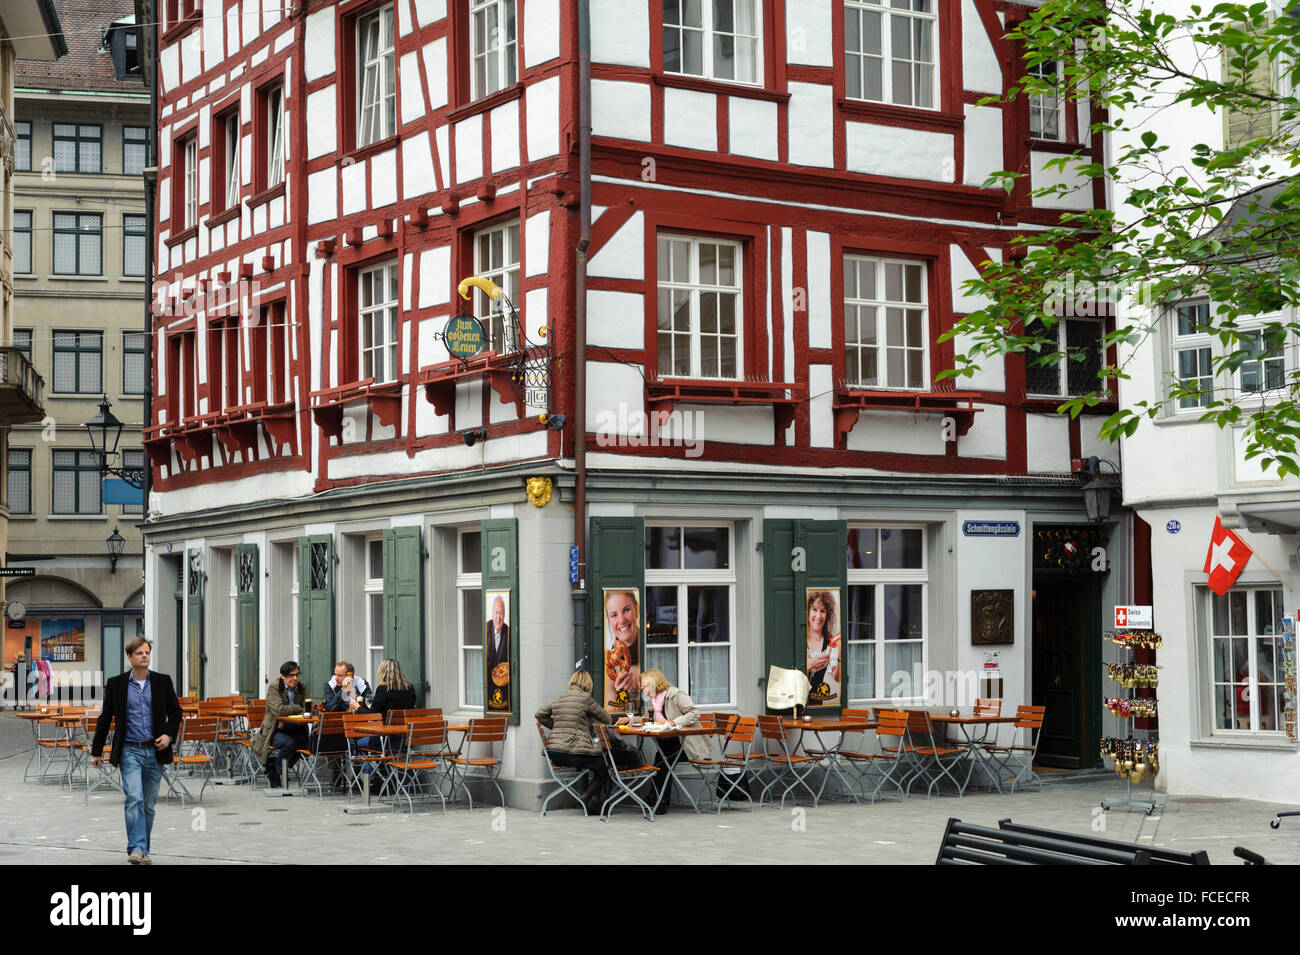 altstadt st gallen kanton st gallen schweiz old town of st stock photo 93744891 alamy. Black Bedroom Furniture Sets. Home Design Ideas